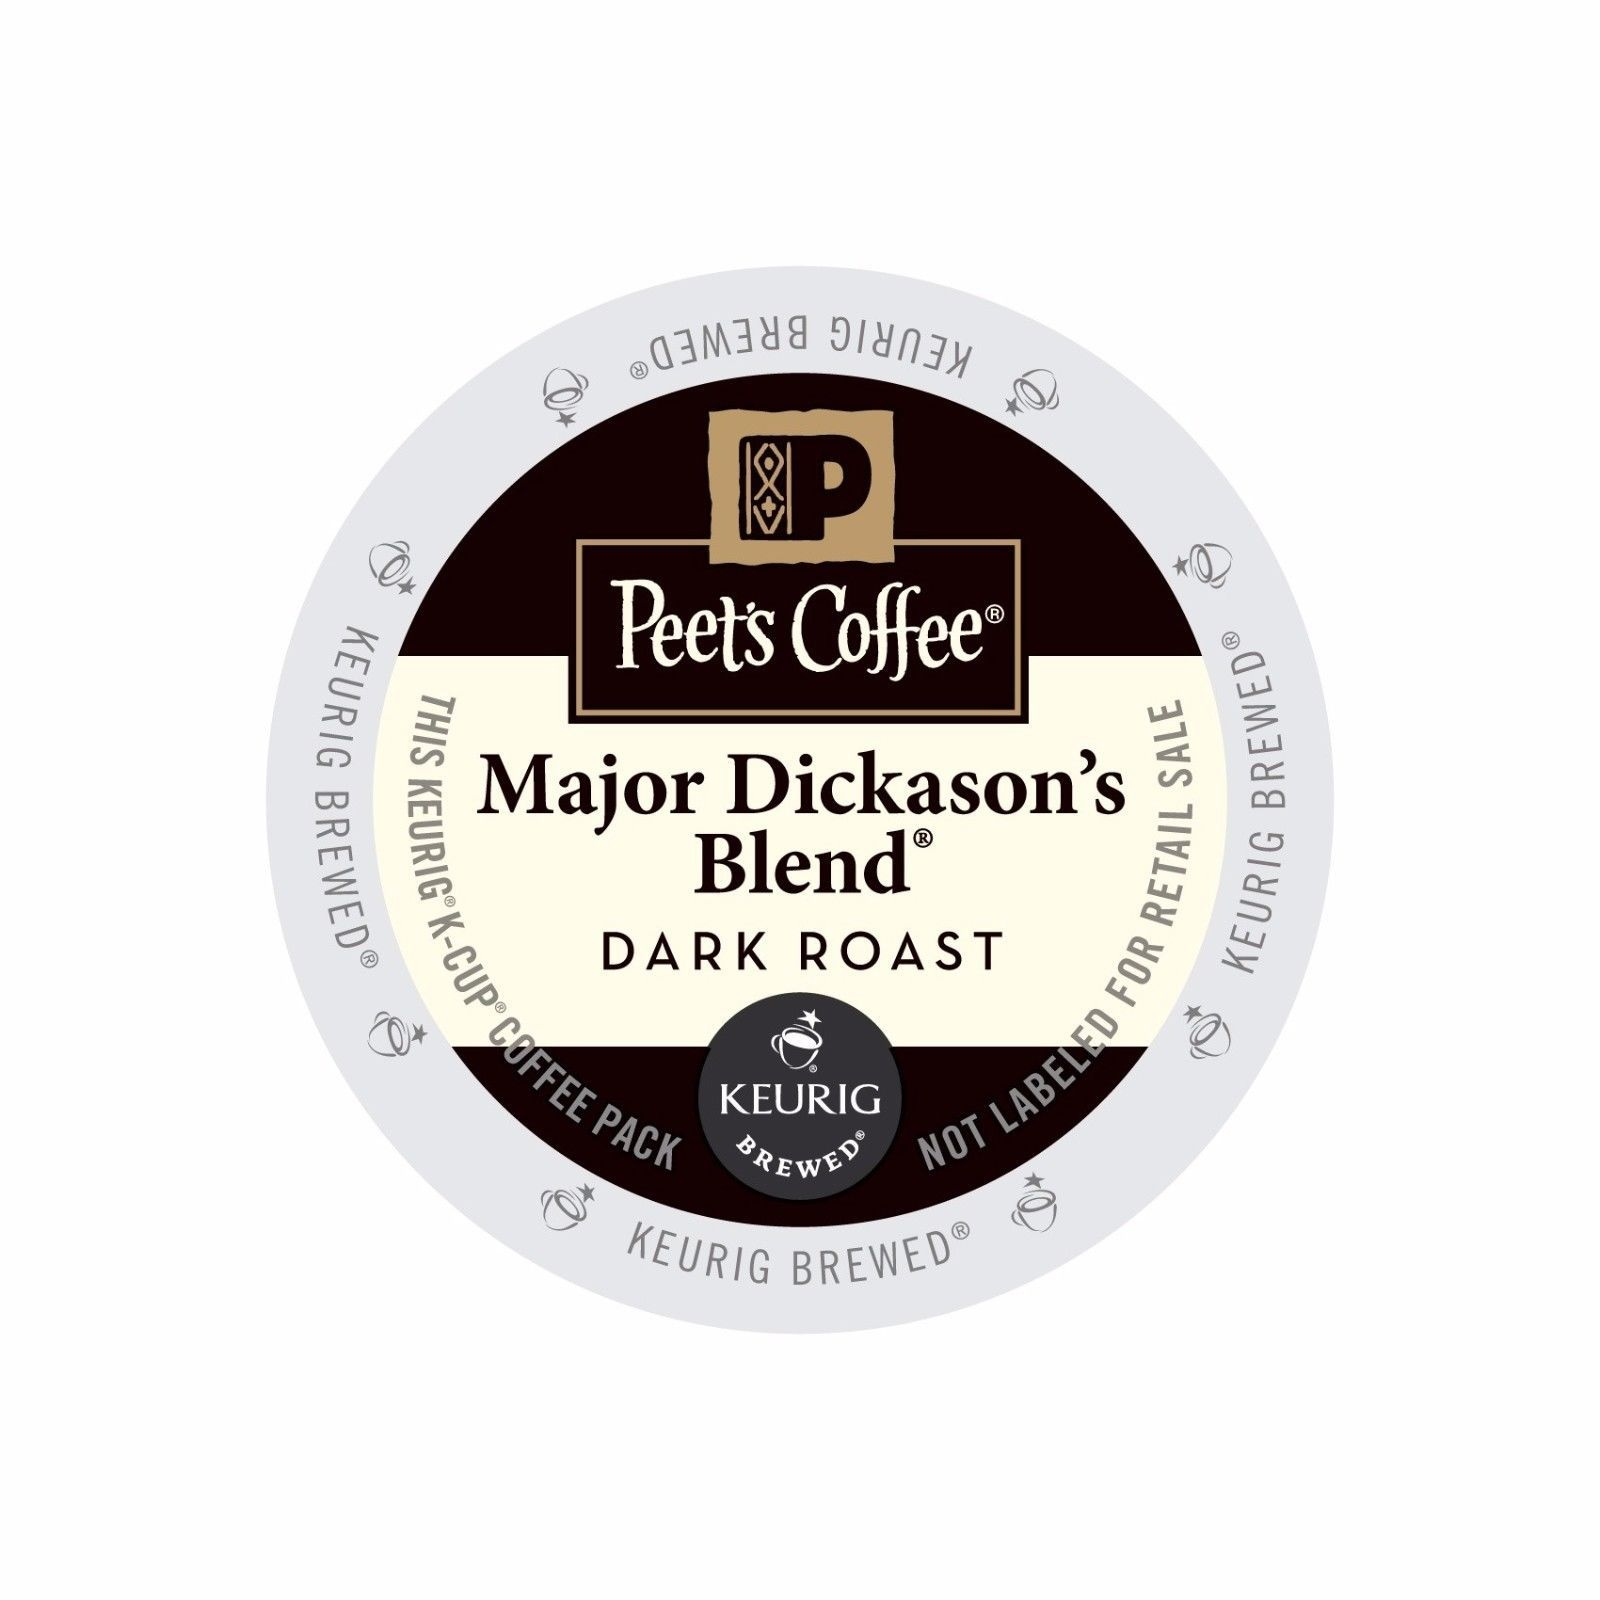 Peet's Coffee Major Dickason's Blend Coffee, 66 count Kcups, FREE SHIPPING